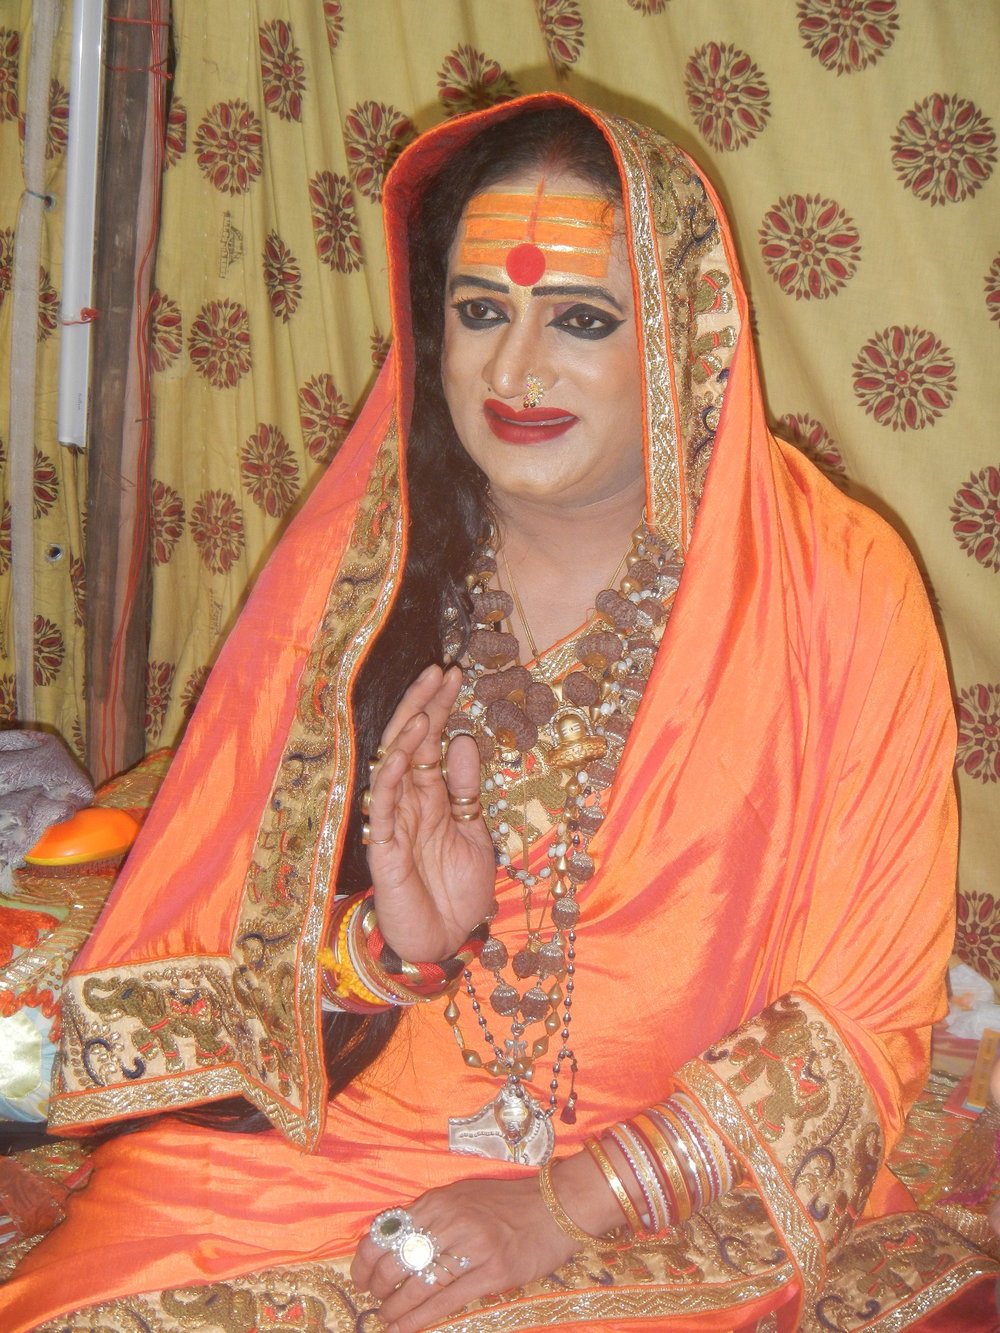 Laxmi Narayan Tripathi, the chief spiritual guardian of Kinnar Akhara, at a social congregation in Prayagraj, India. Photo by Priyadarshini Sen.